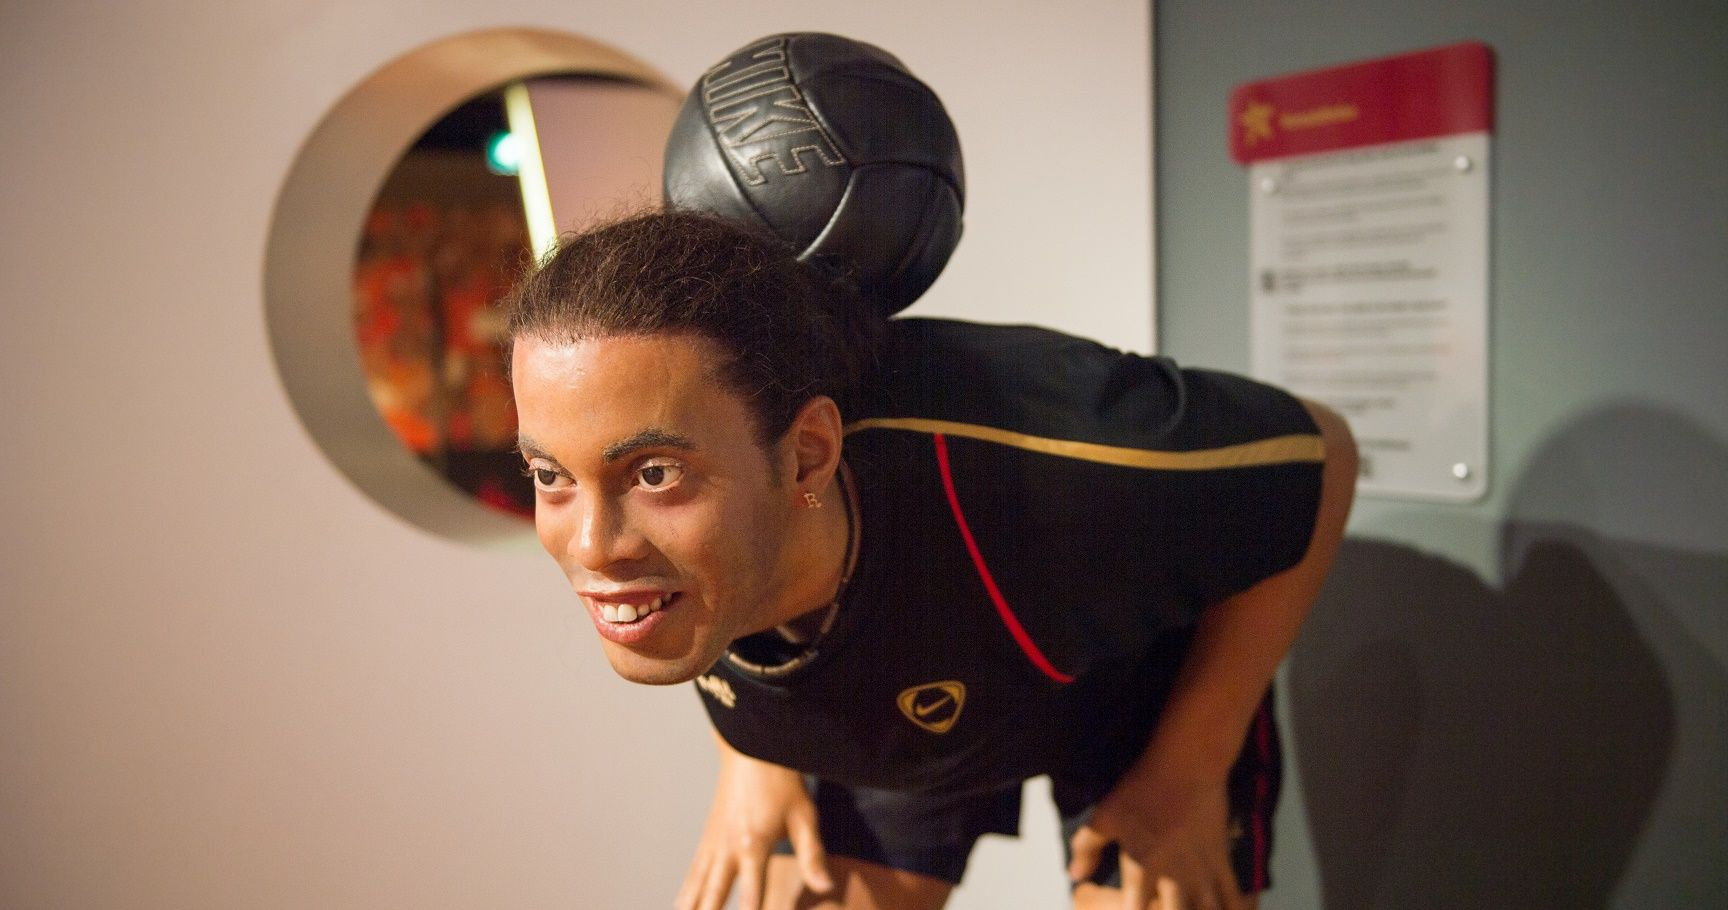 56c405a52a4c17 Top 20 Ugliest Soccer Players | TheSportster